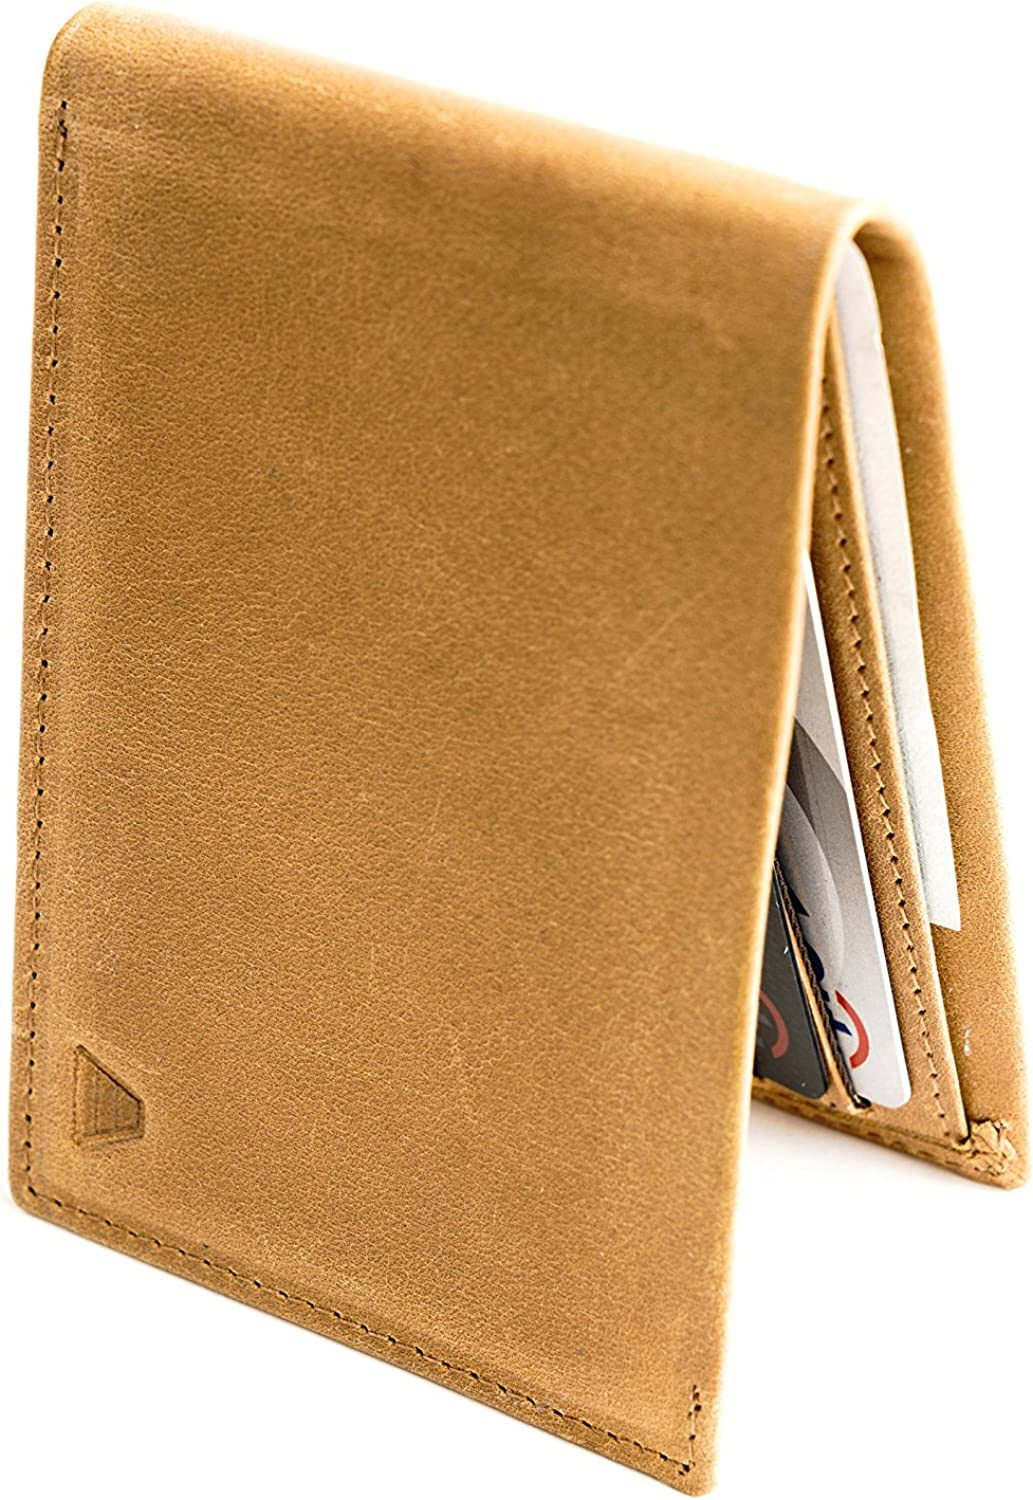 Andar Leather Slim Bifold Wallet With RFID Block Made of Full Grain Leather- The Ambassador